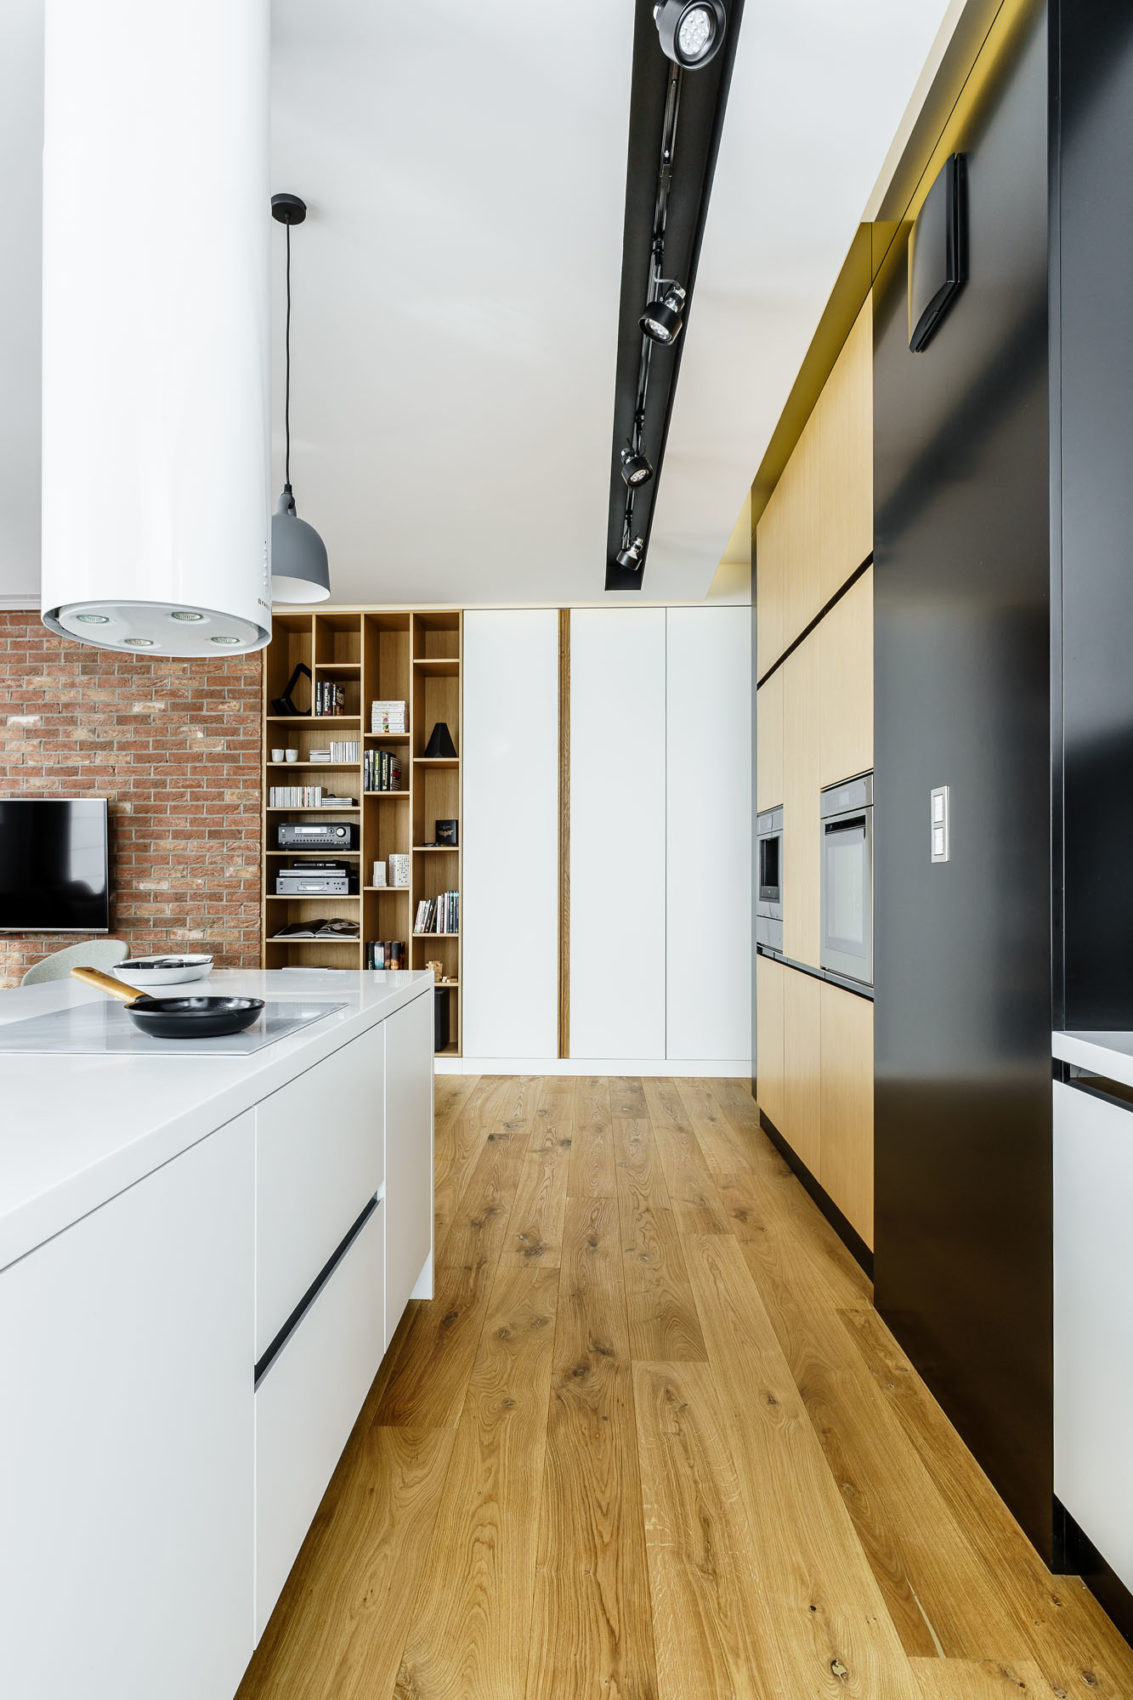 Top Floor Apartment in Gdynia by Dragon Art (17)